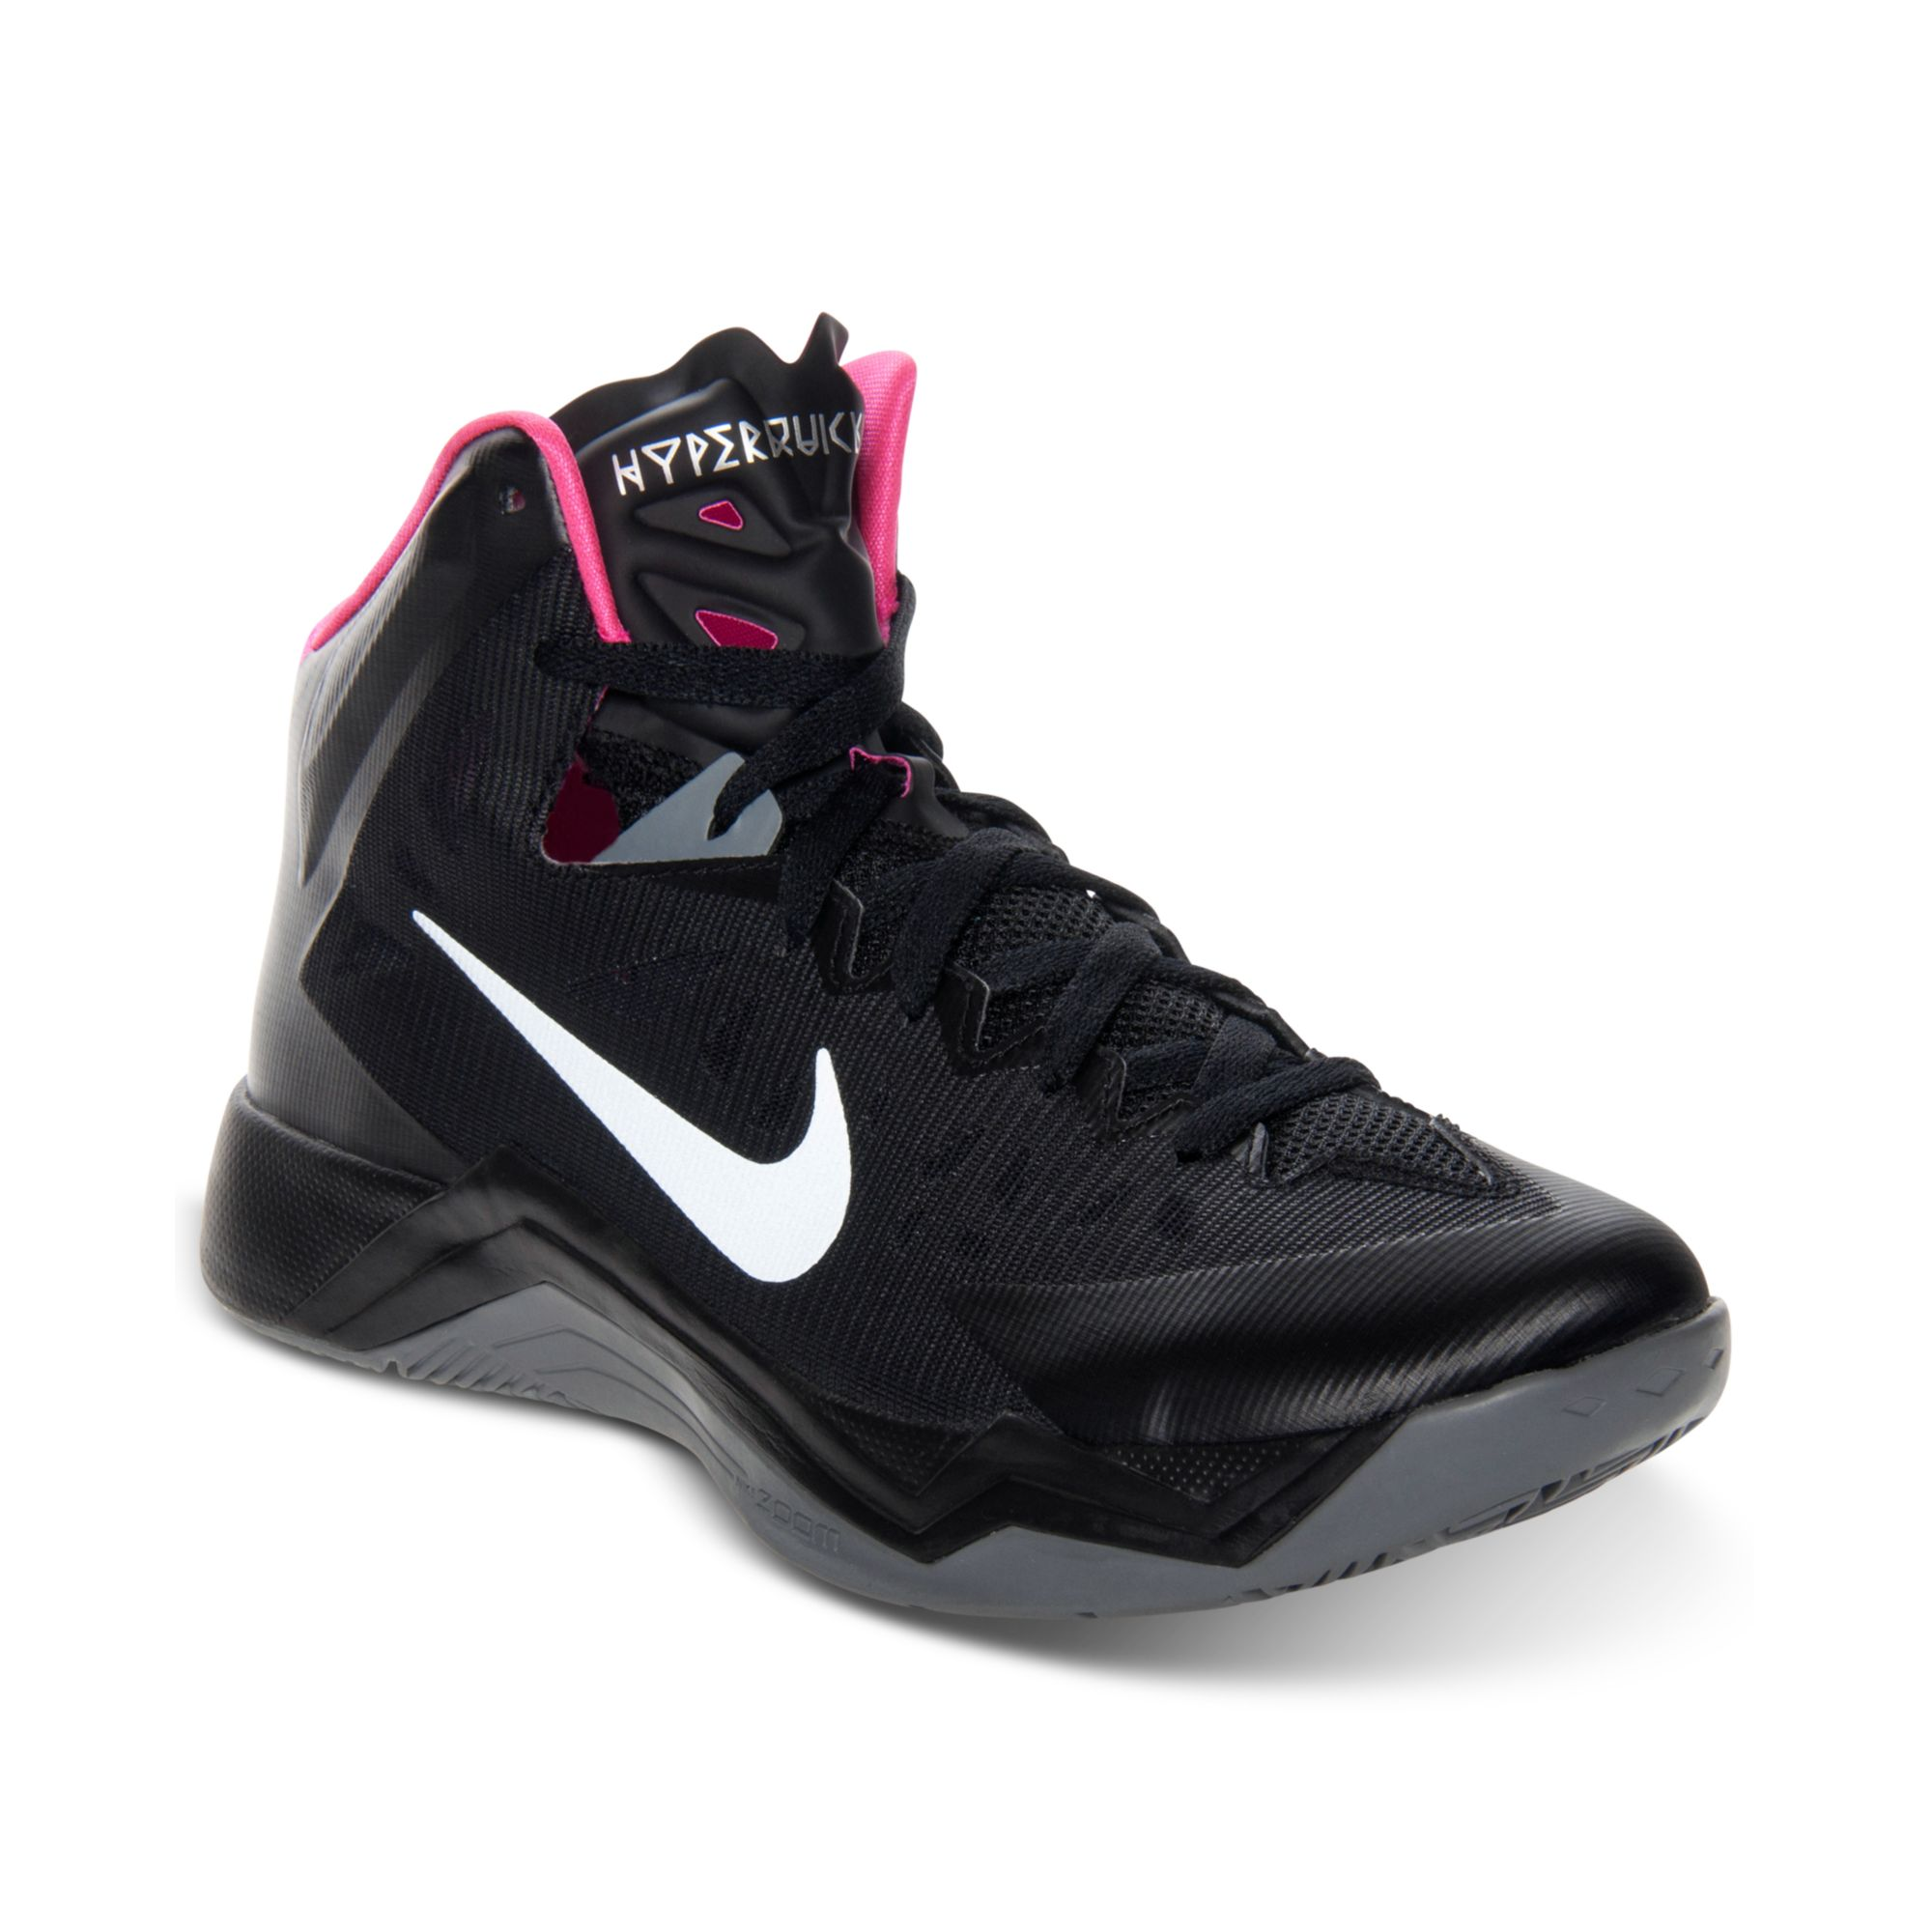 new styles 65d1f 03280 nike-blackmetallic-silverpin-mens -hyper-quickness-basketball-sneakers-from-finish-line-product-1-15395546-293976037.jpeg